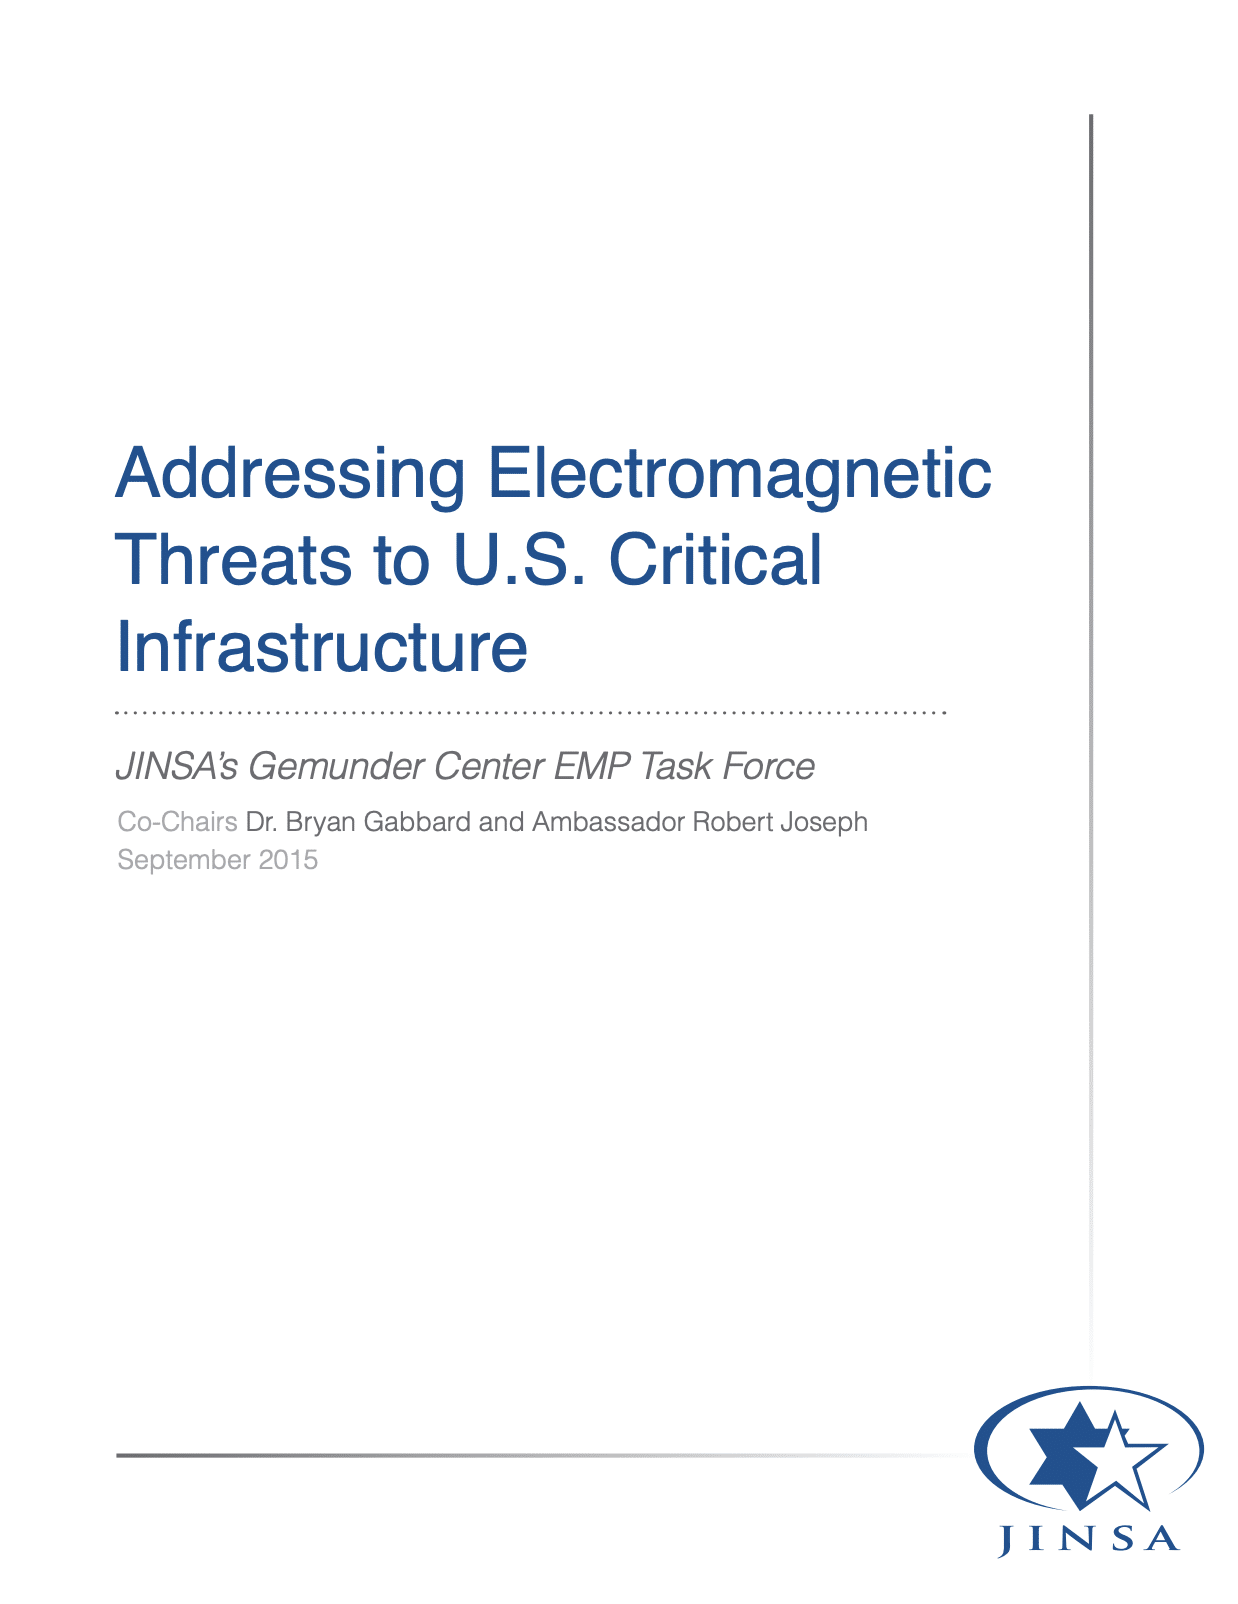 Addressing Electromagnetic Threats to U.S. Critical Infrastructure